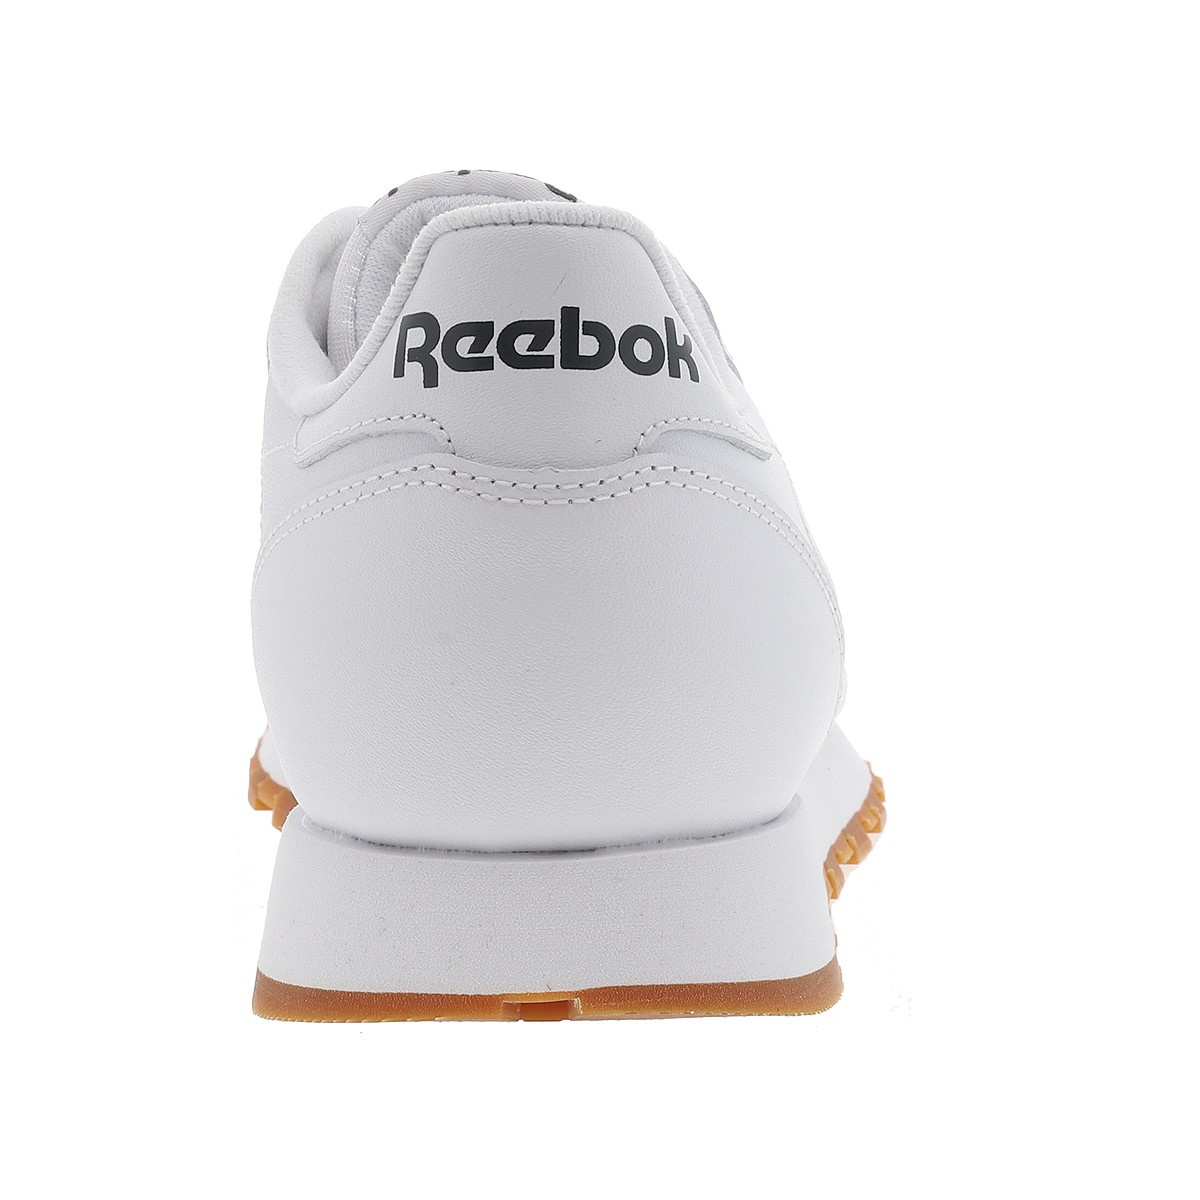 REEBOK Baskets basses cuir CLASSIC LEATHER